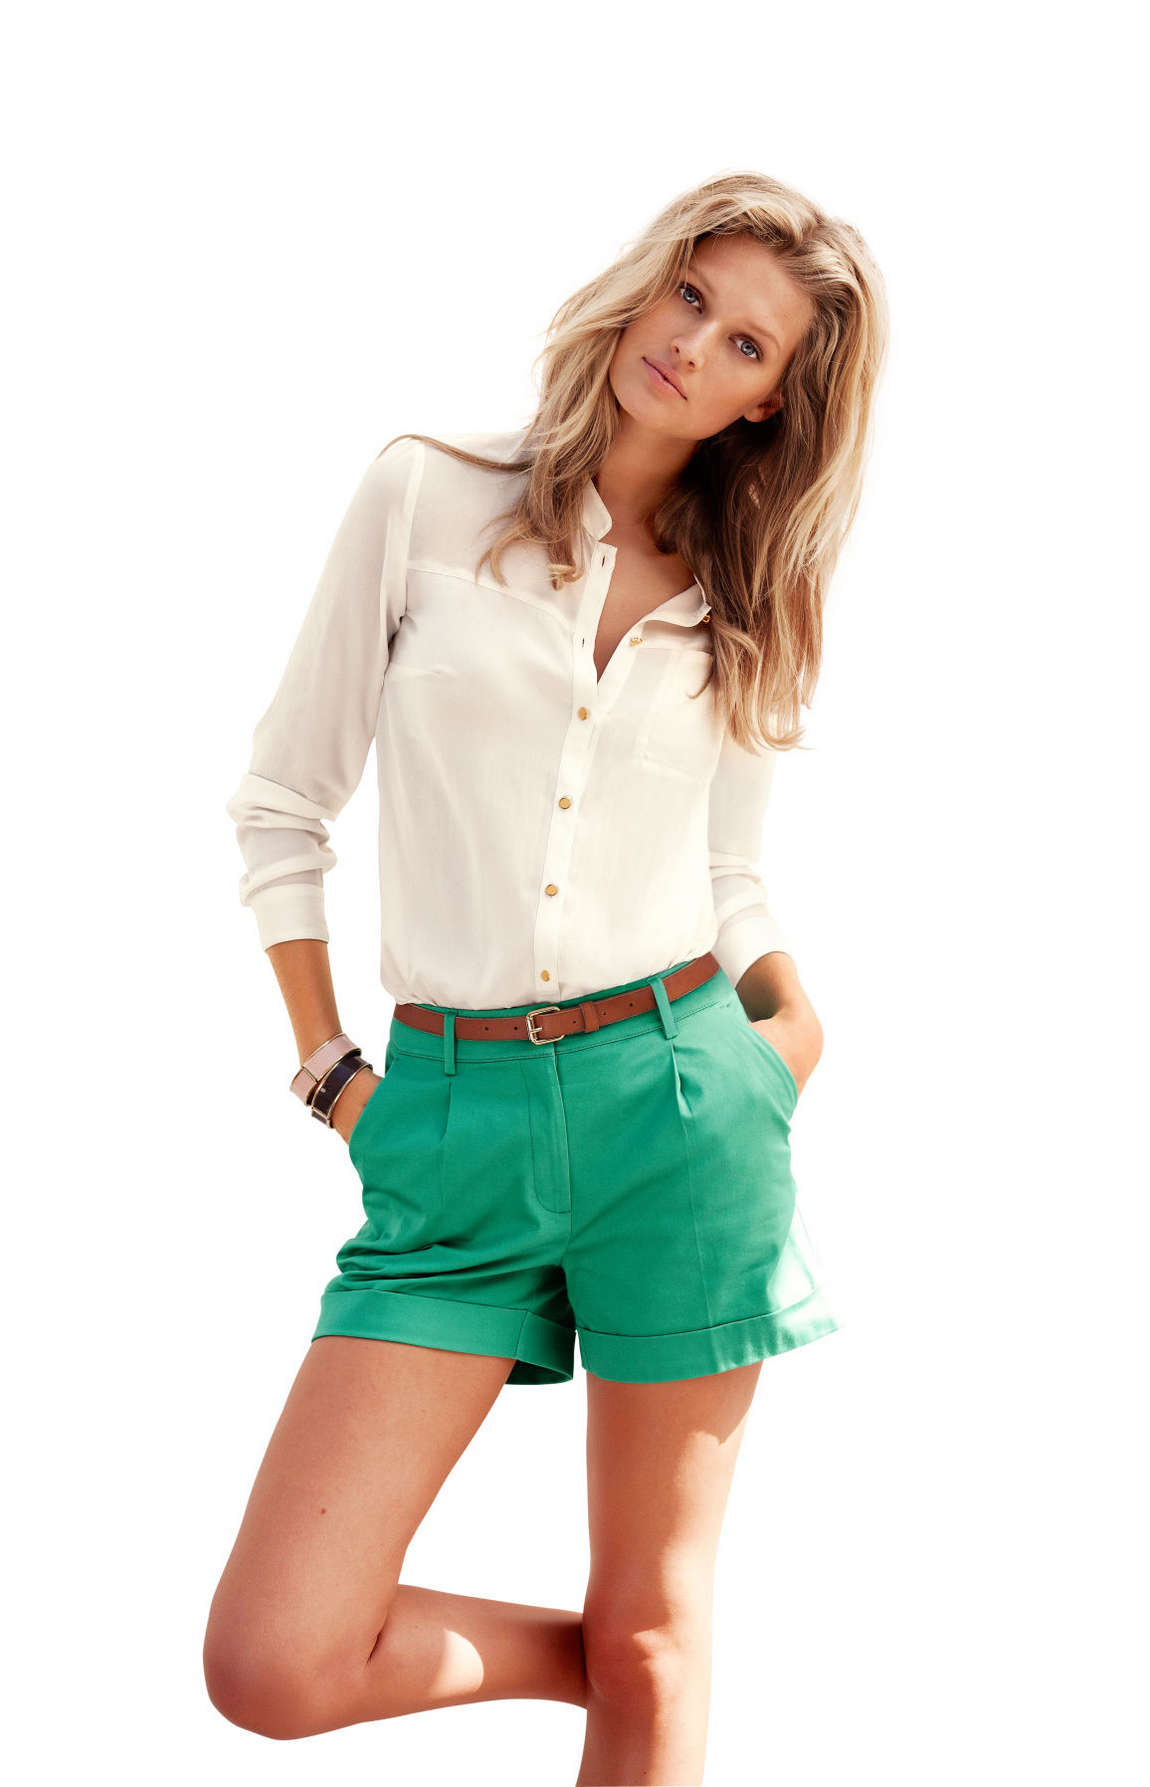 Toni Garrn H and M Spring-Summer Collection pic -63